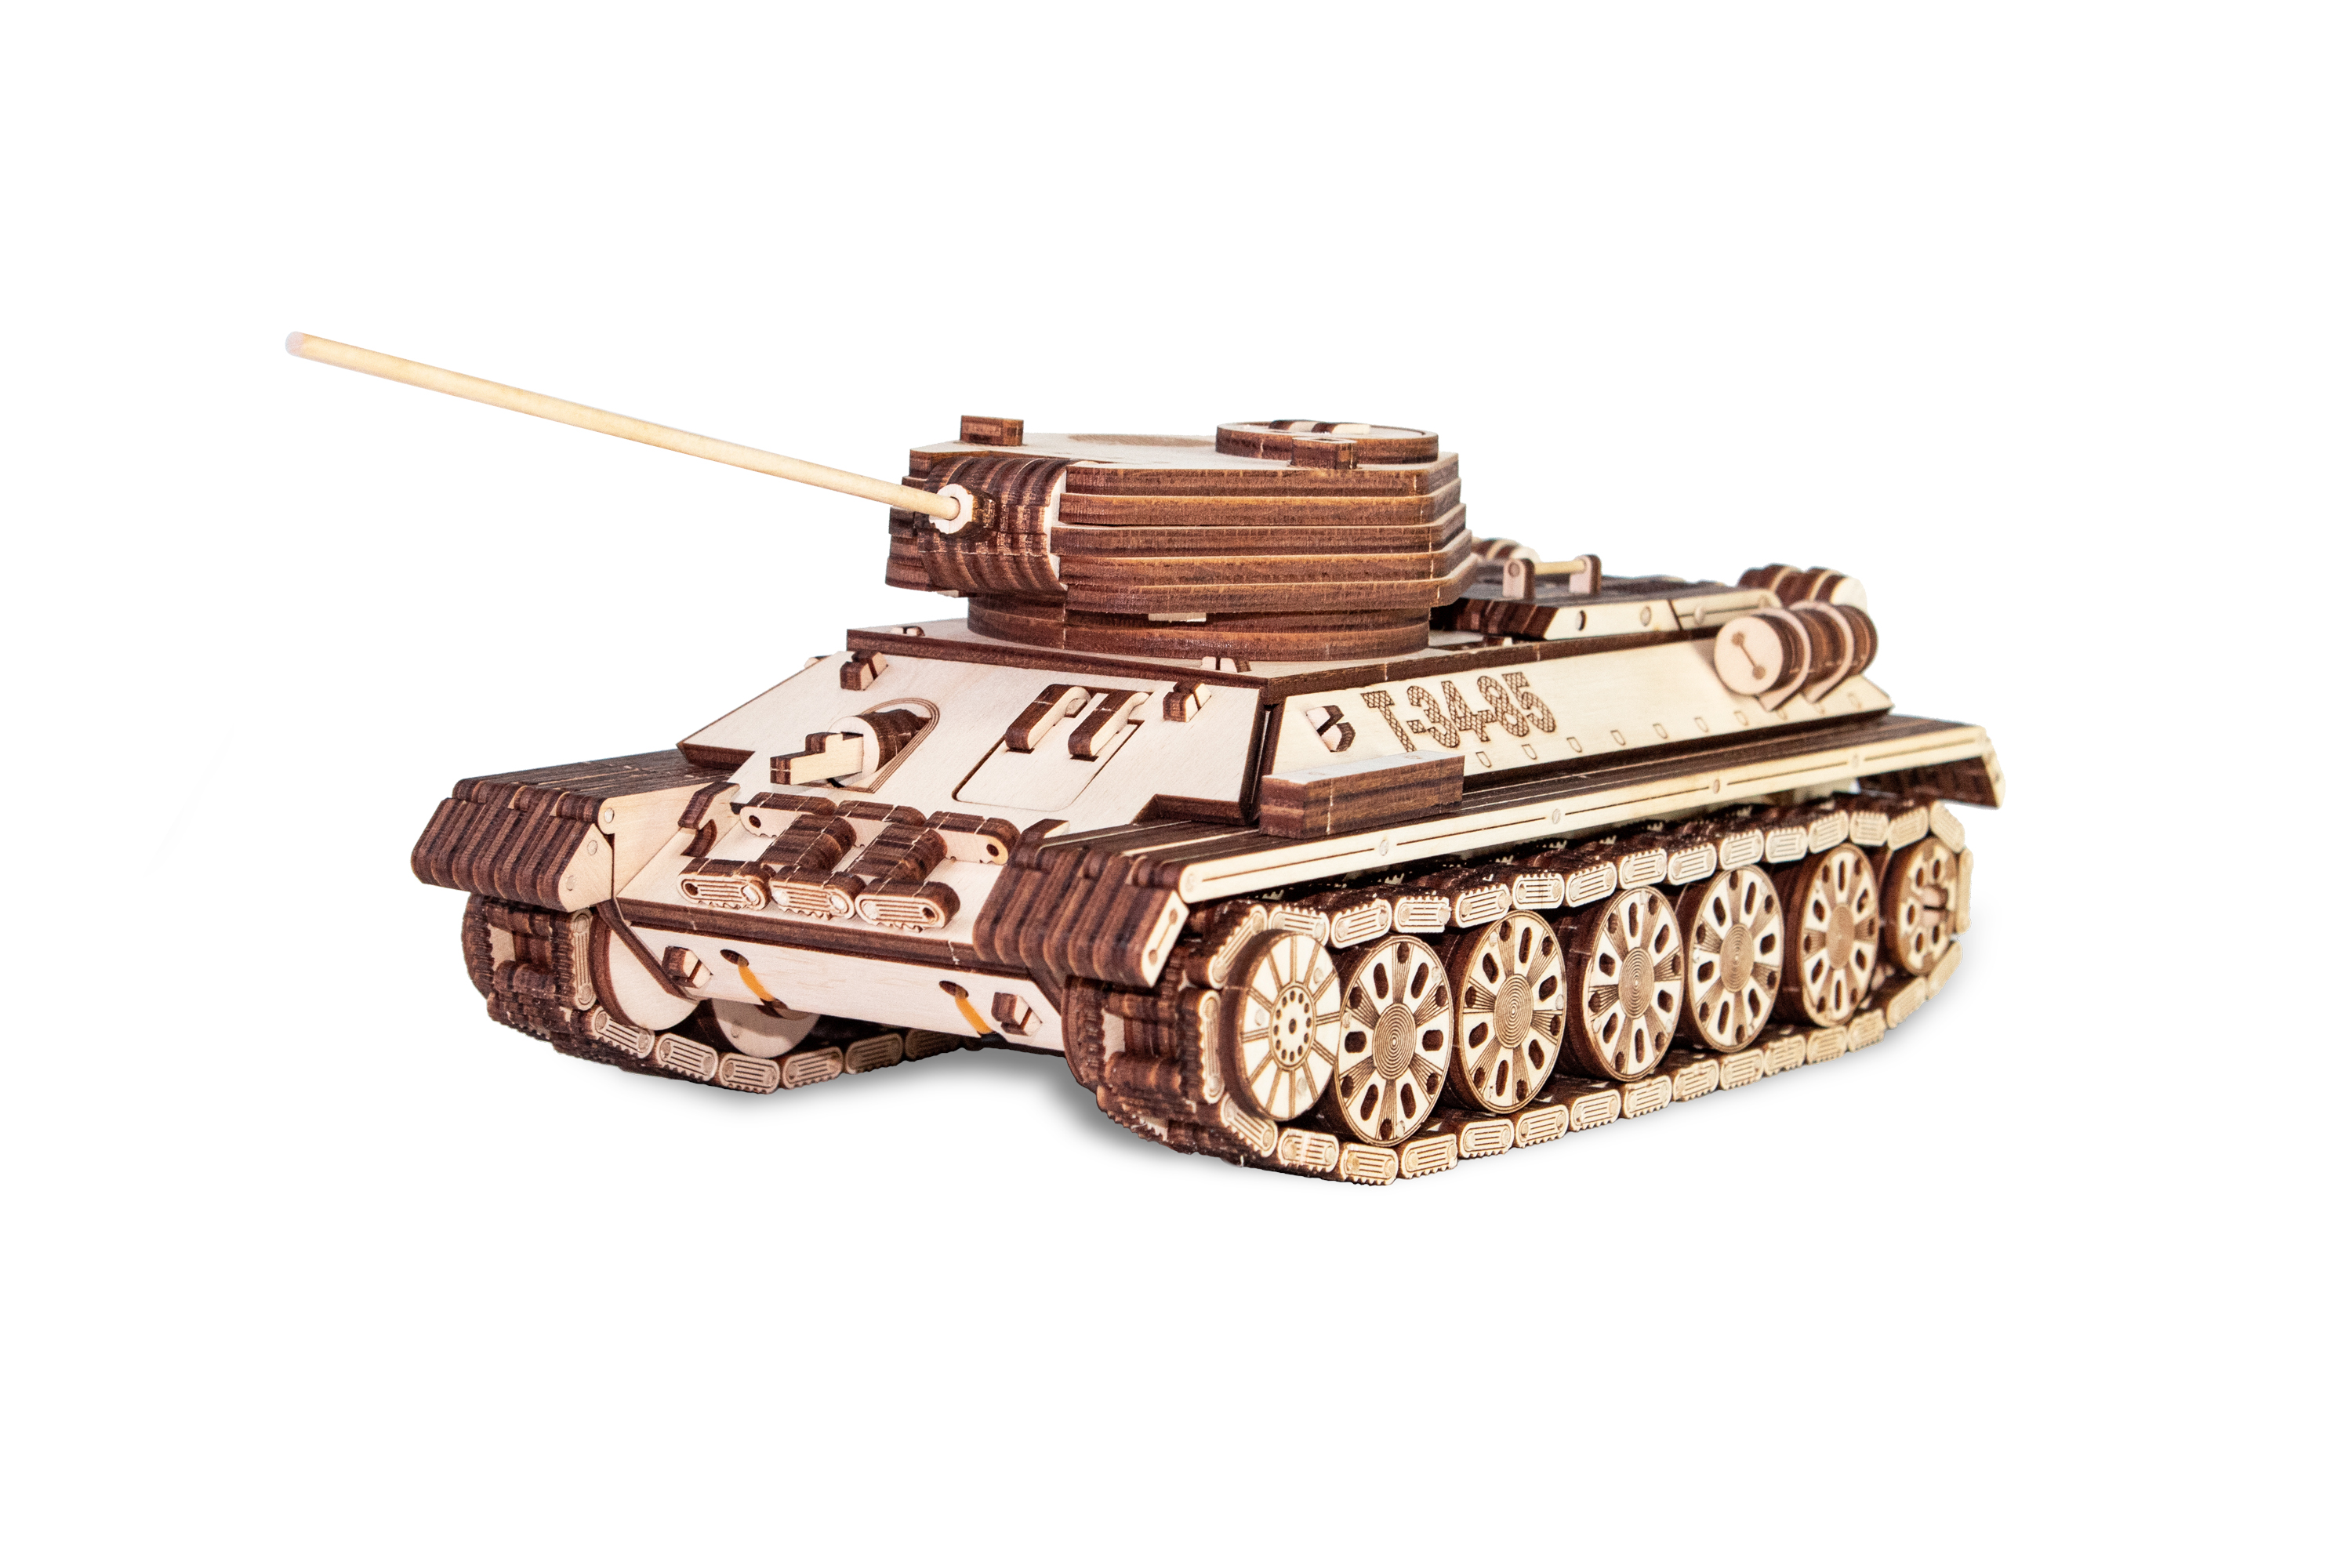 Tank T-34 Eco Wood Art Wooden Models